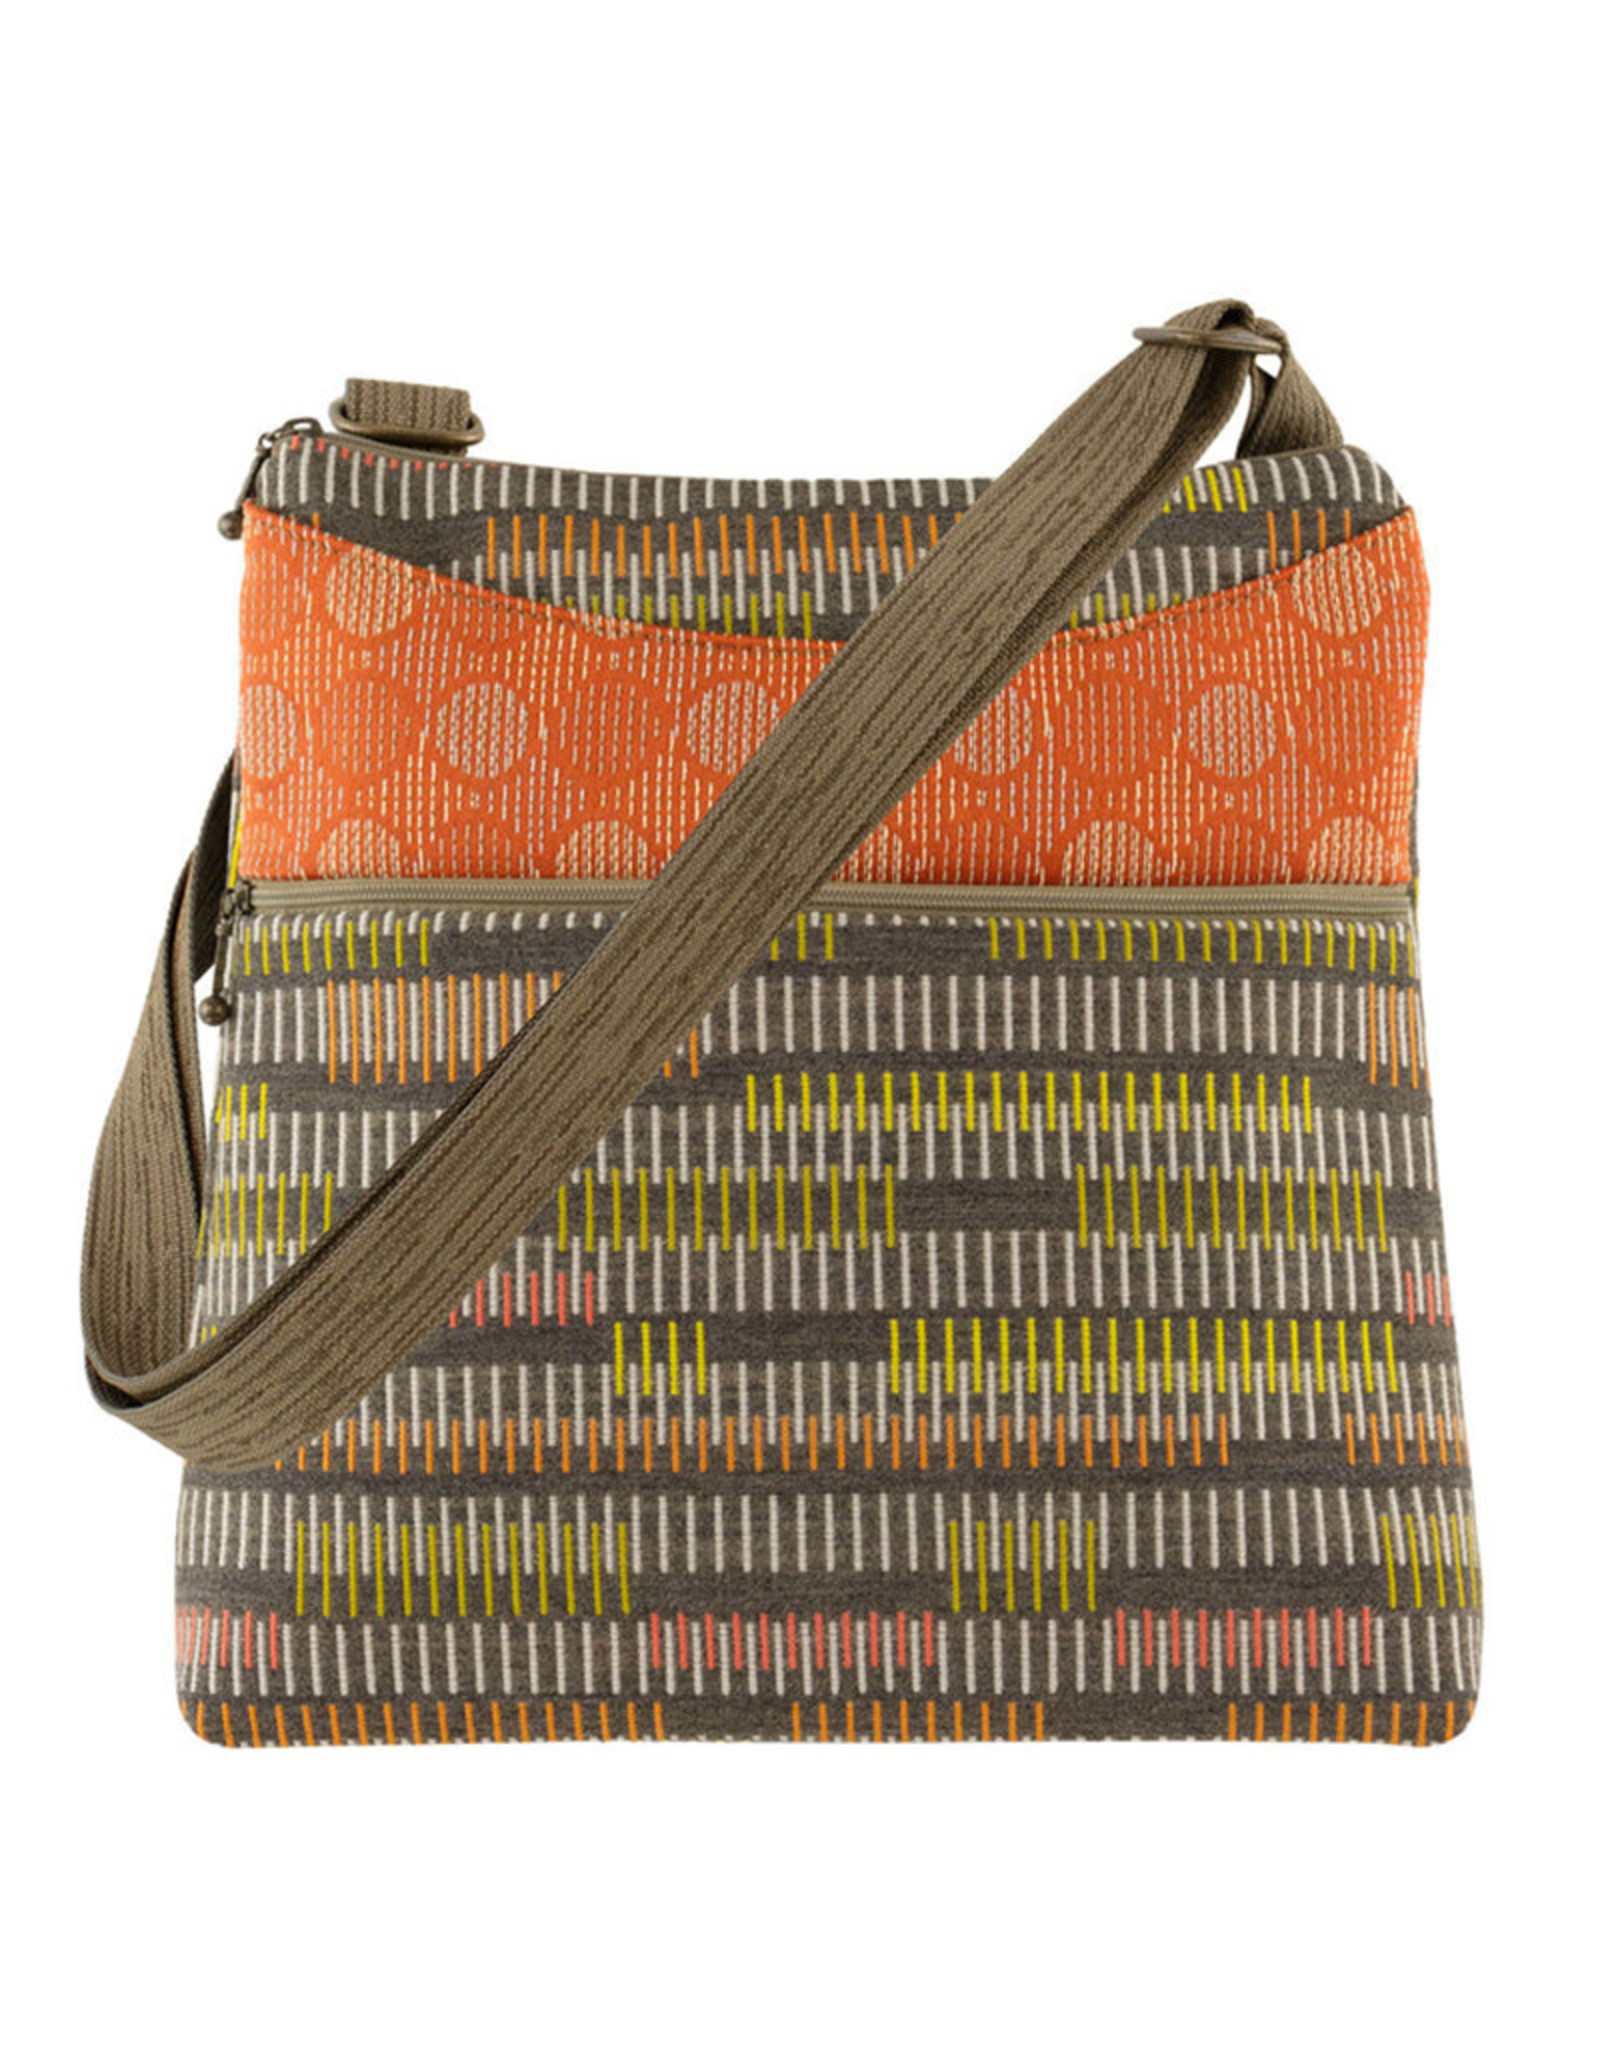 MARUCA ZEN GREY SPREE BAG